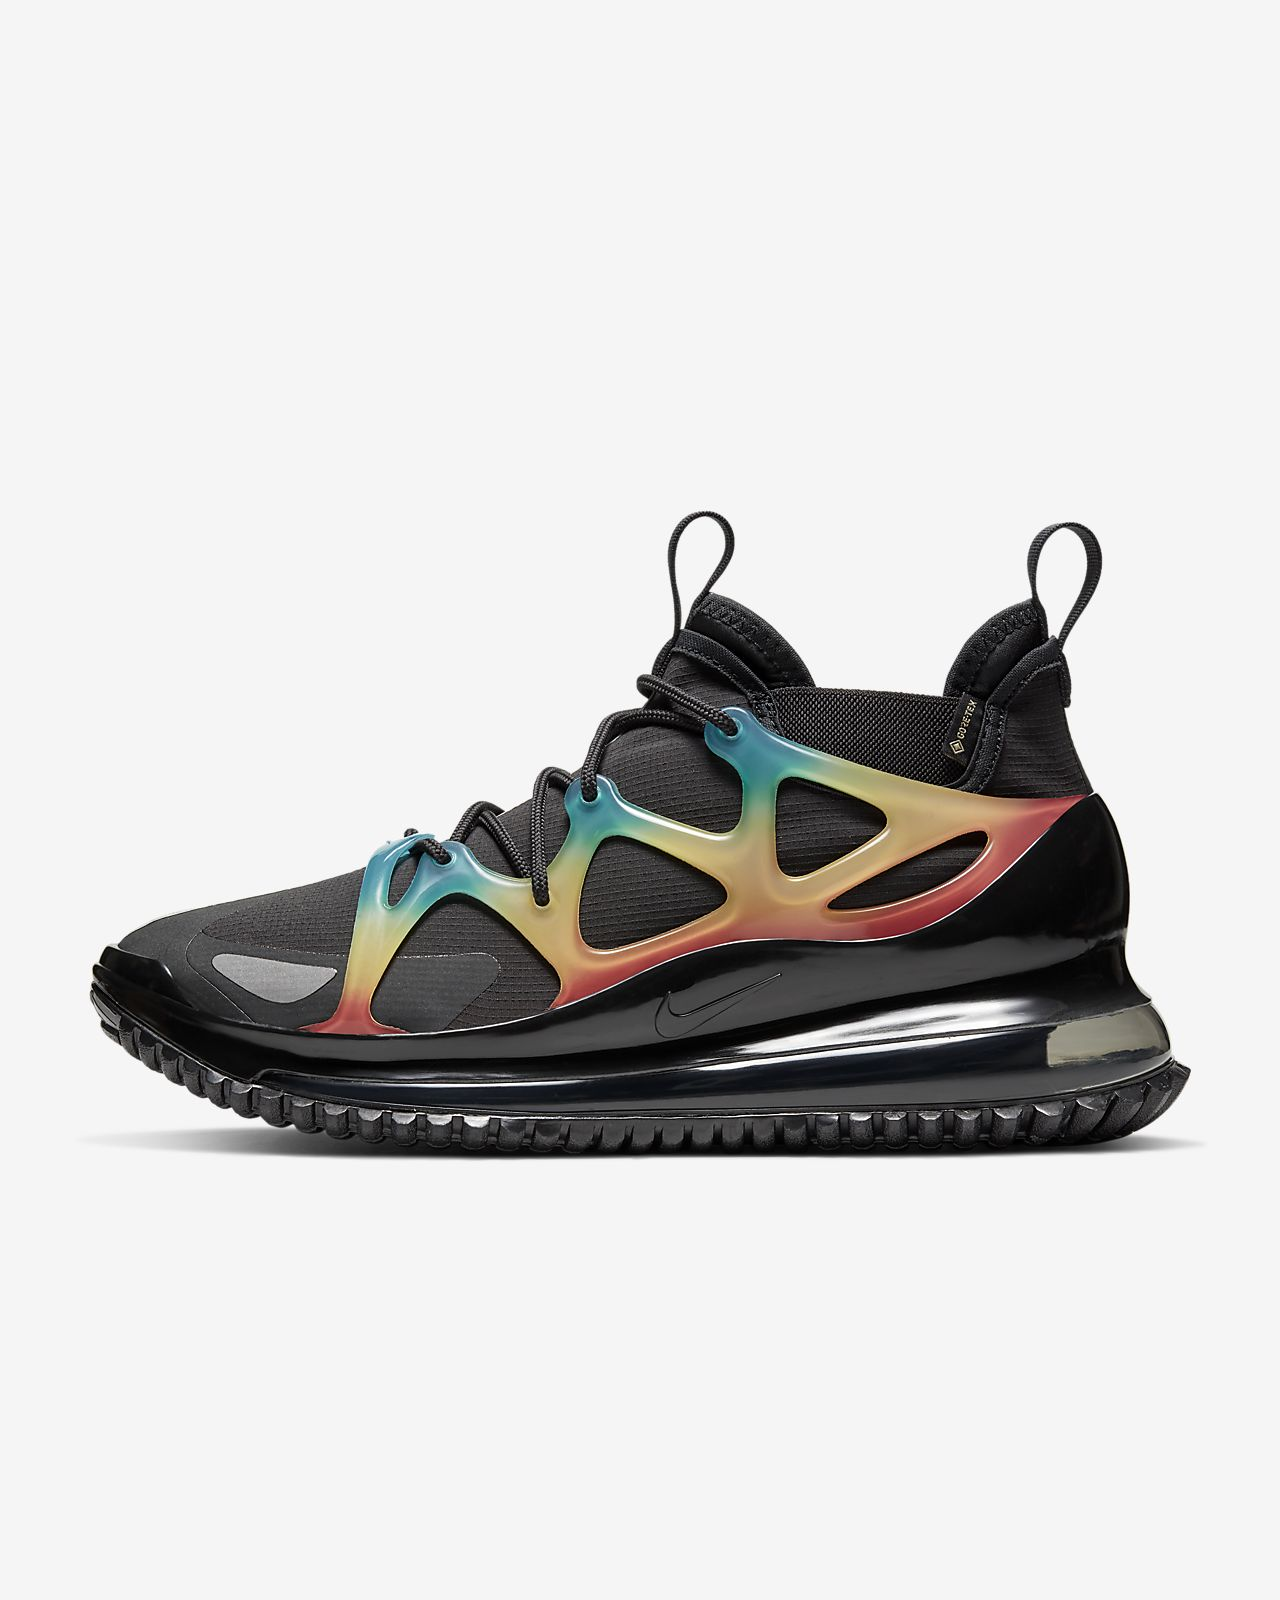 Nike Air Max 270 Black Laser Orange